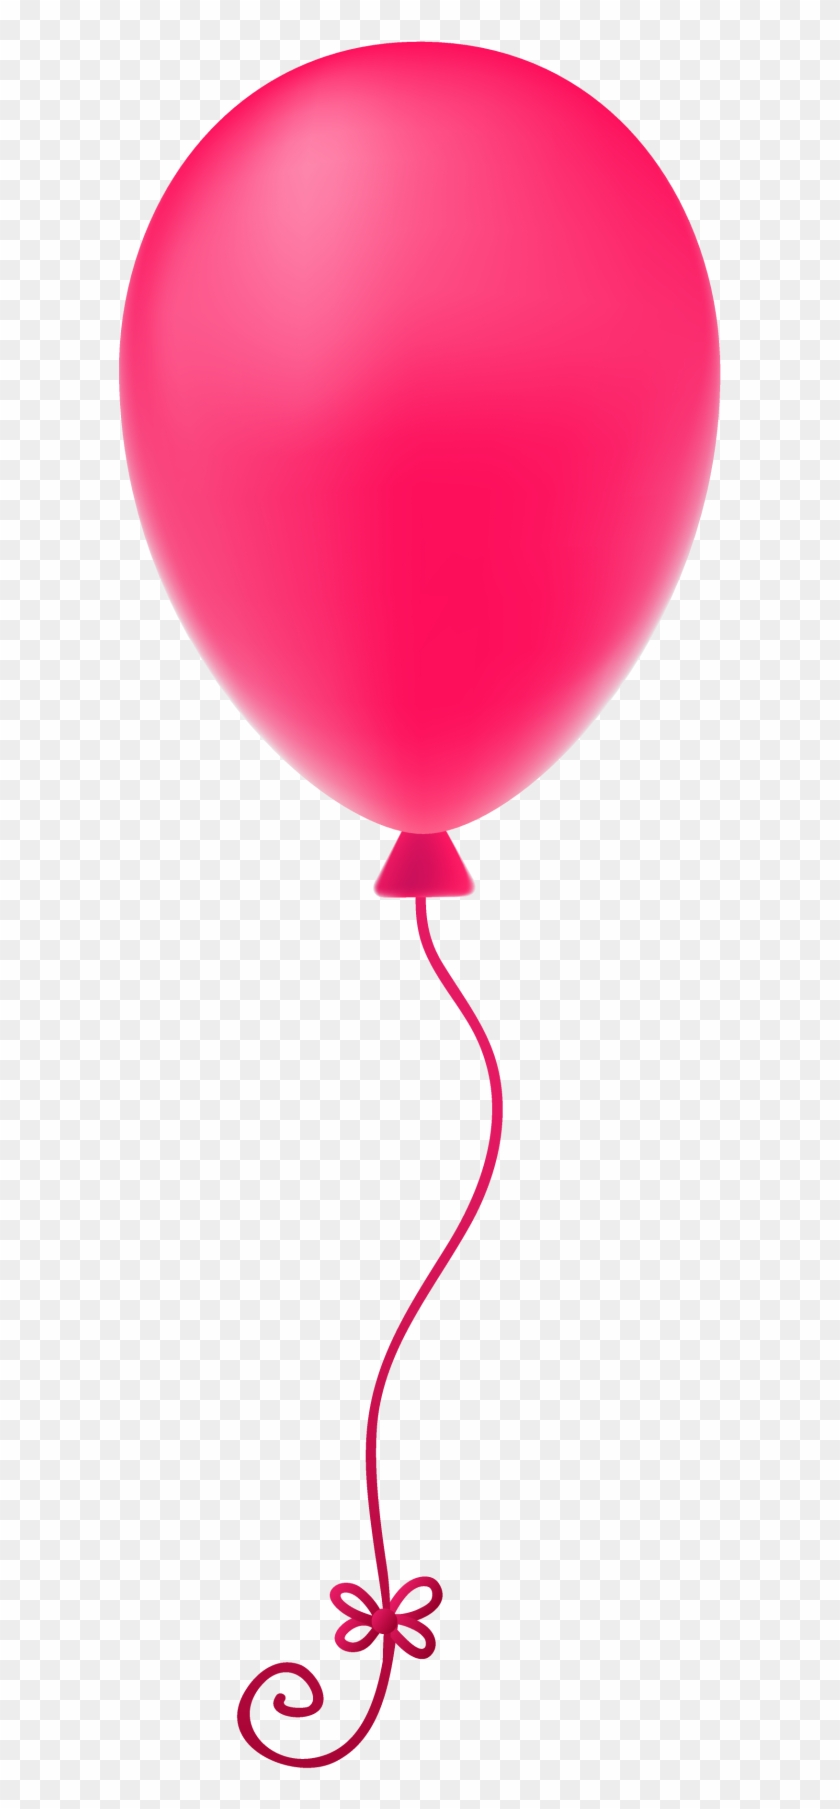 Balloon Free Png Transparent Background Images Free - Pink Balloon Transparent Background #1237399